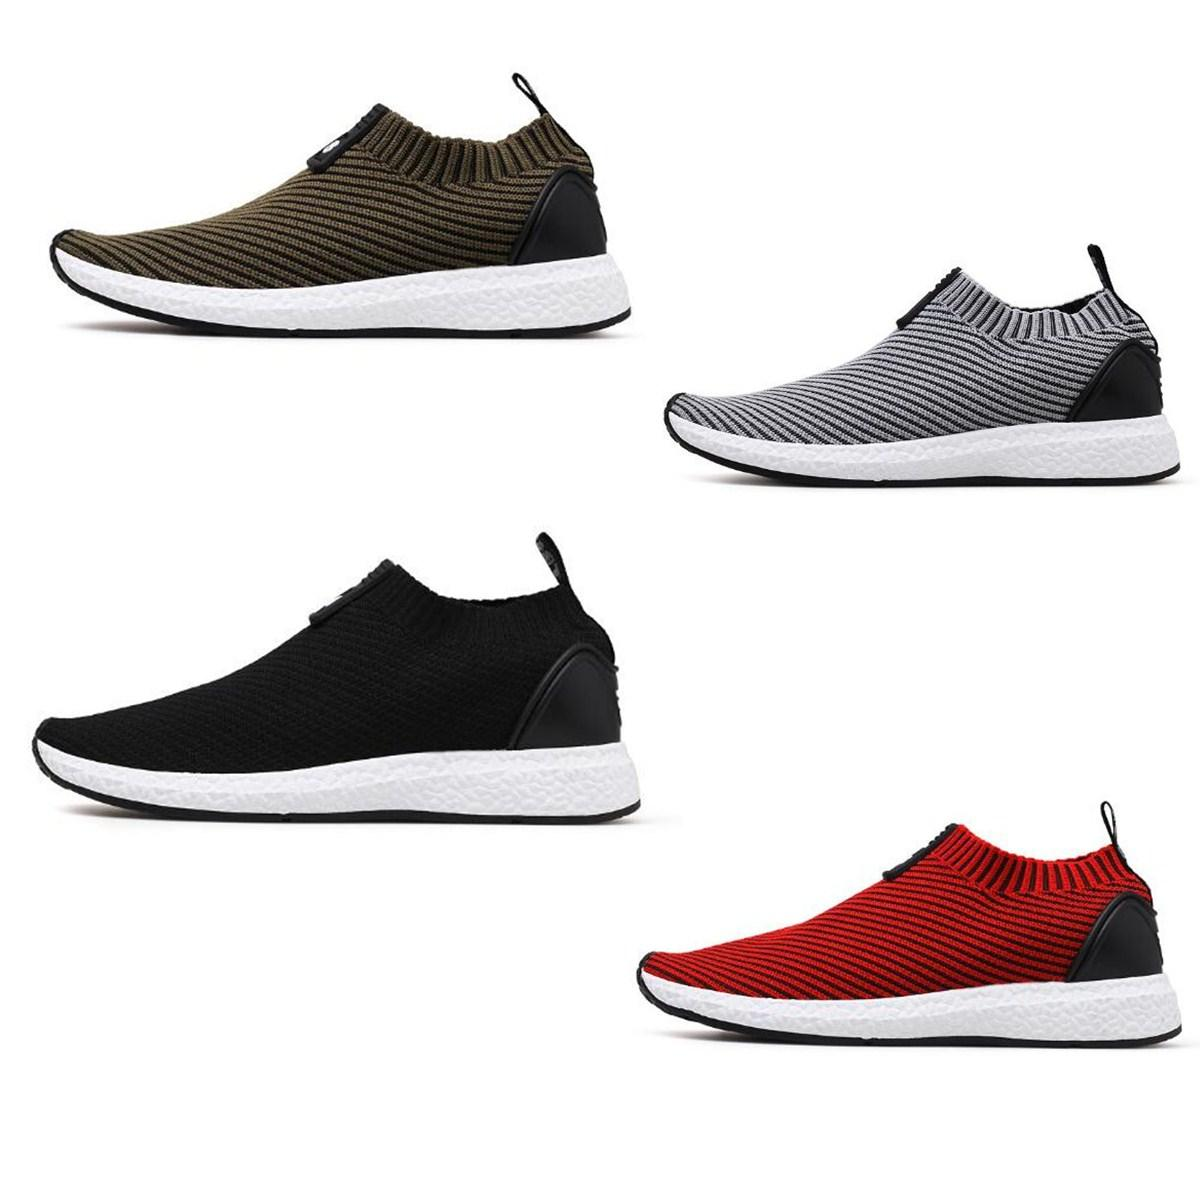 Men's Sneakers Running Fitness Gym Trainer Sports Shoes Casual Breathable Athletic Sneakers